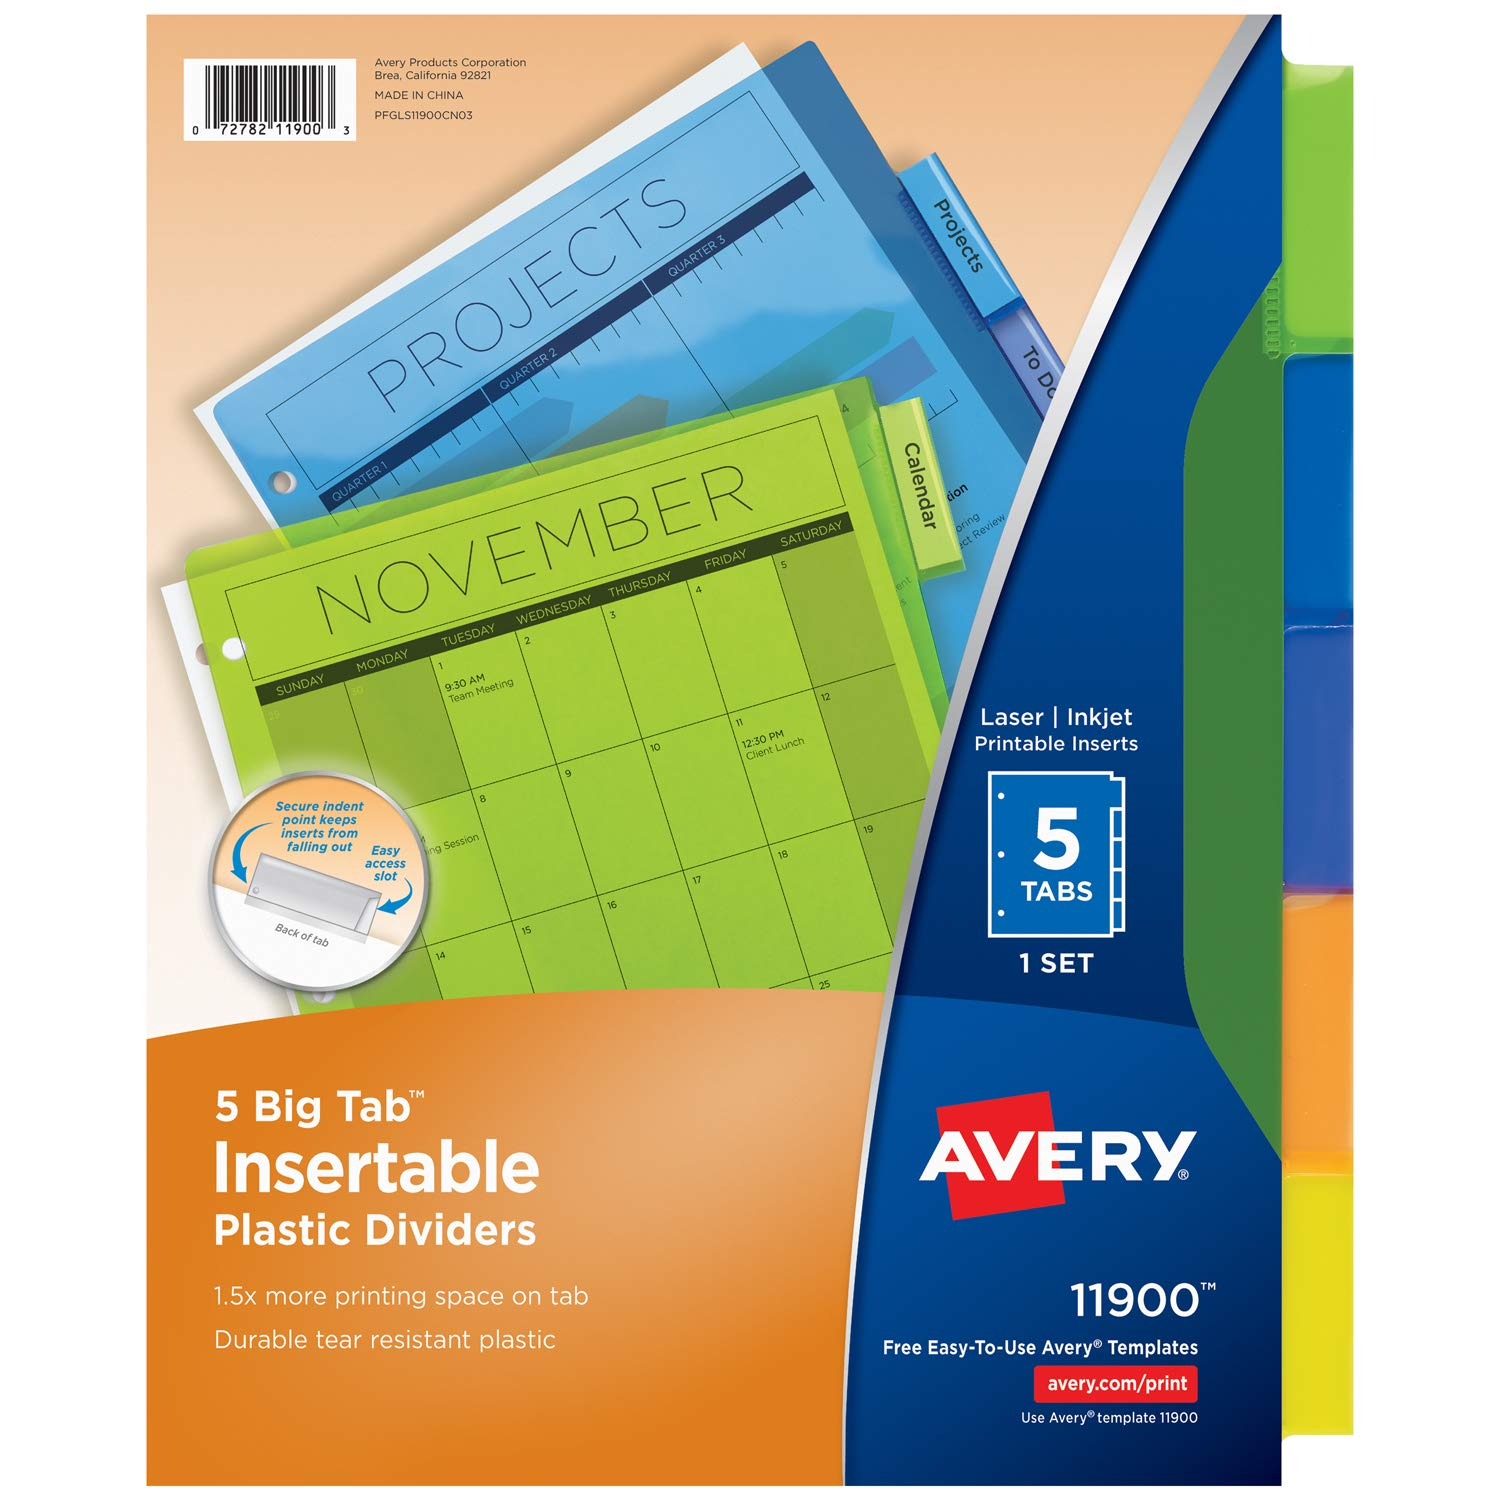 Avery 5-Tab Plastic Binder Dividers, Insertable Multicolor Big Tabs, 1 Set (11900) by Avery (Image #1)